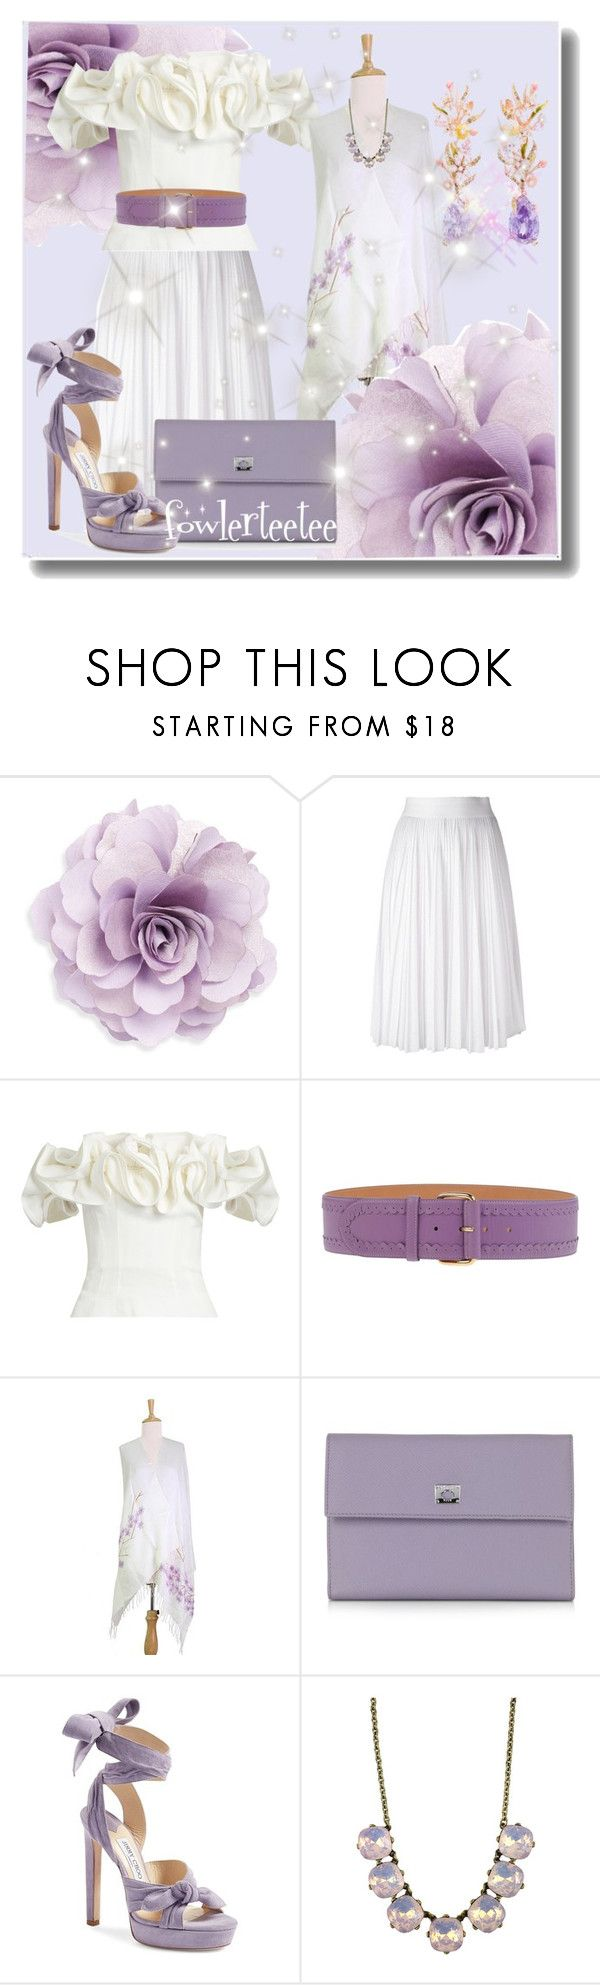 """""""Evening Garden Party...by fowlerteetee"""" by fowlerteetee ❤ liked on Polyvore featuring Cara, Givenchy, Brock Collection, Blumarine, NOVICA, Pineider, Jimmy Choo and Anabela Chan"""